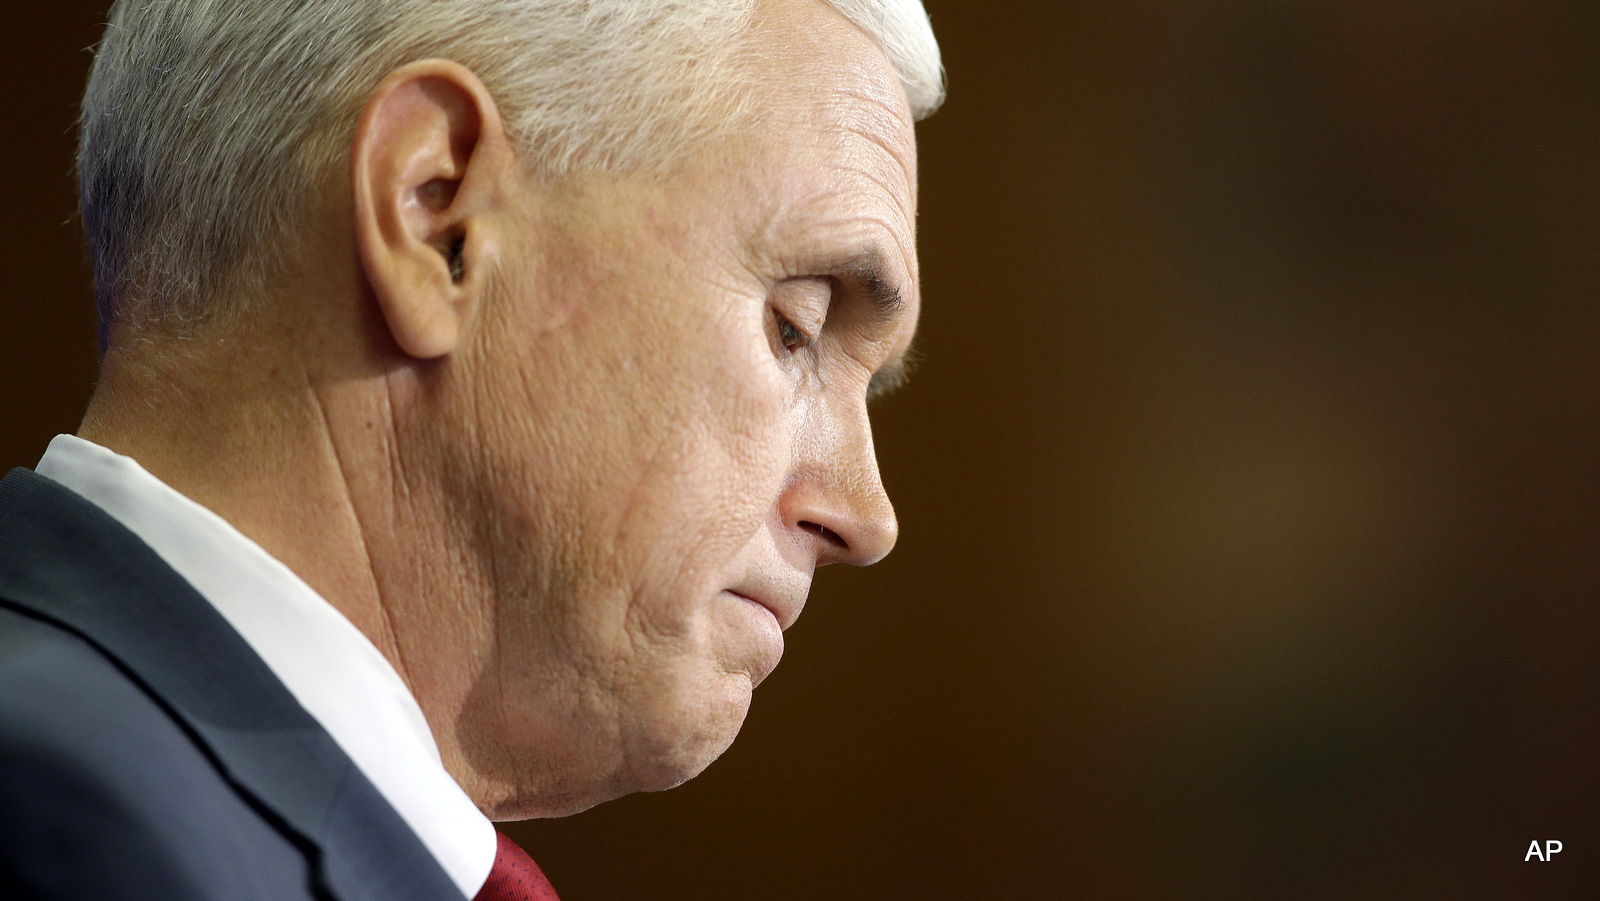 Indiana Gov. Mike Pence listens to a question during a news conference, Tuesday, March 31, 2015, in Indianapolis. Pence said that he wants legislation on his desk by the end of the week to clarify that the state's new religious-freedom law does not allow discrimination against gays and lesbians.